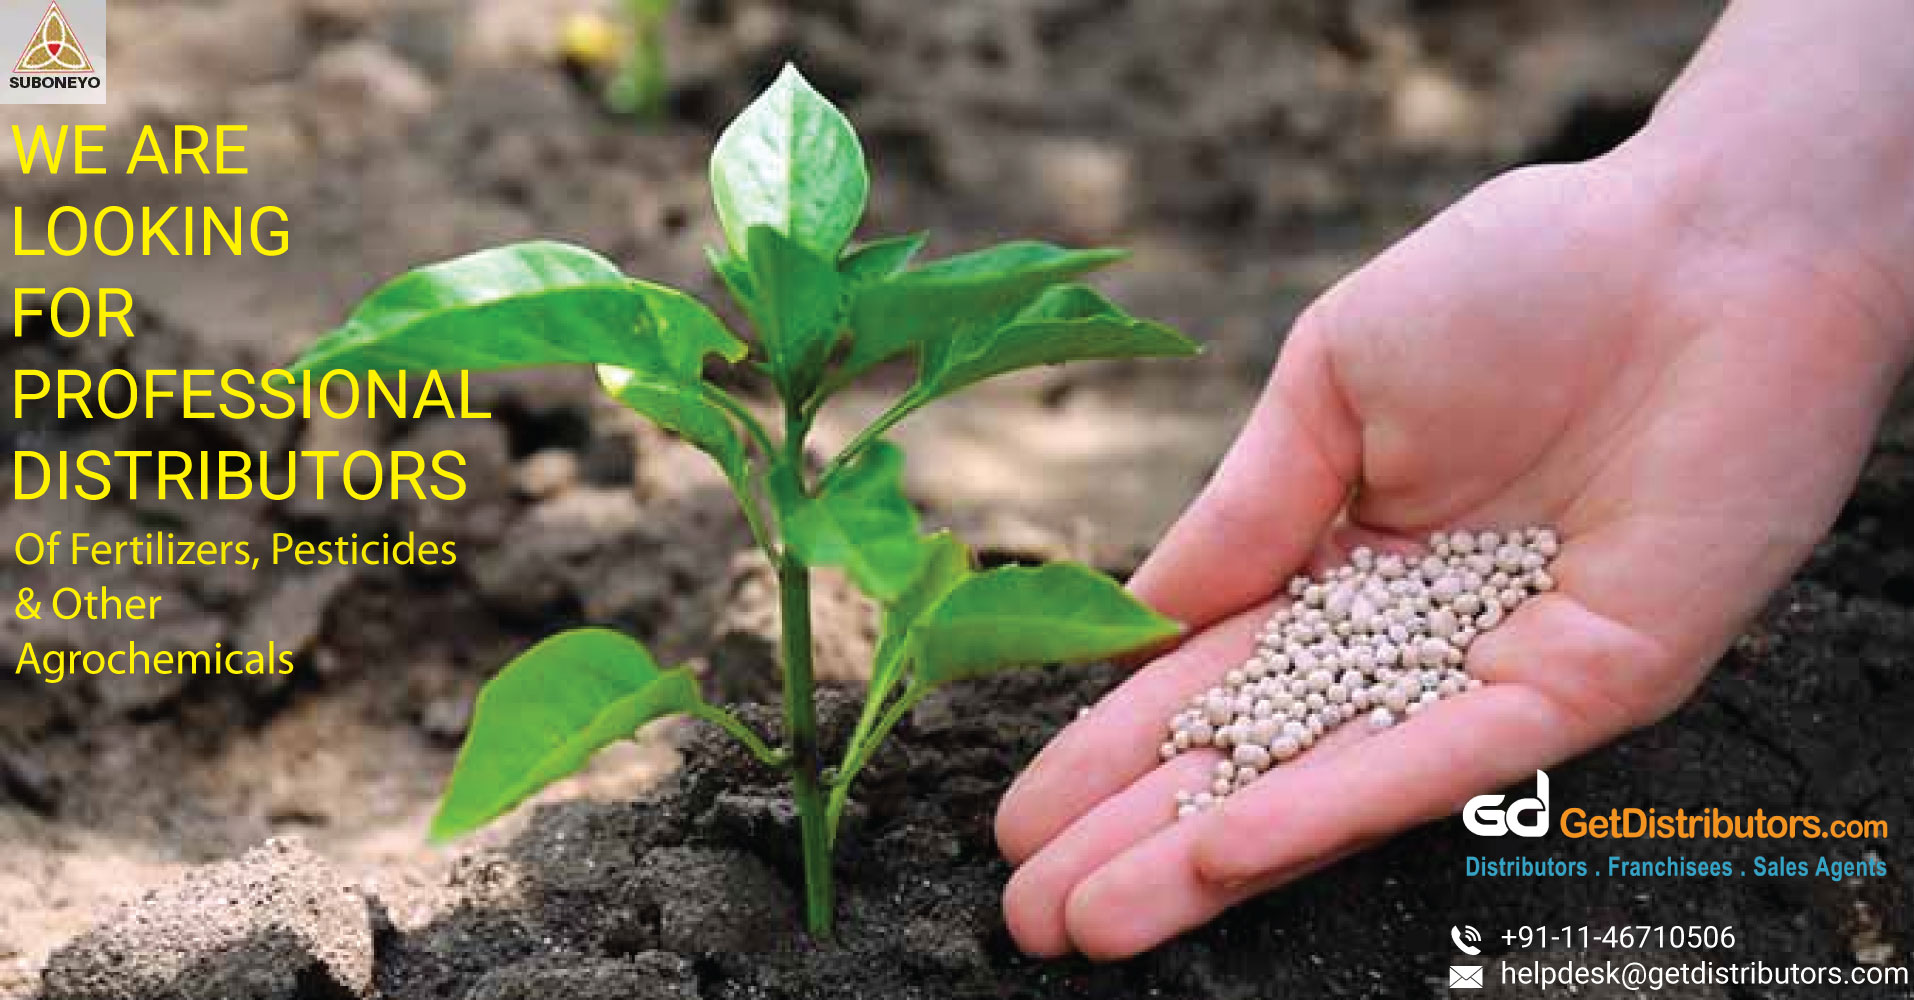 Distributorship Of High-Quality Fertilizers, Pesticides And Other Agrochemical Products